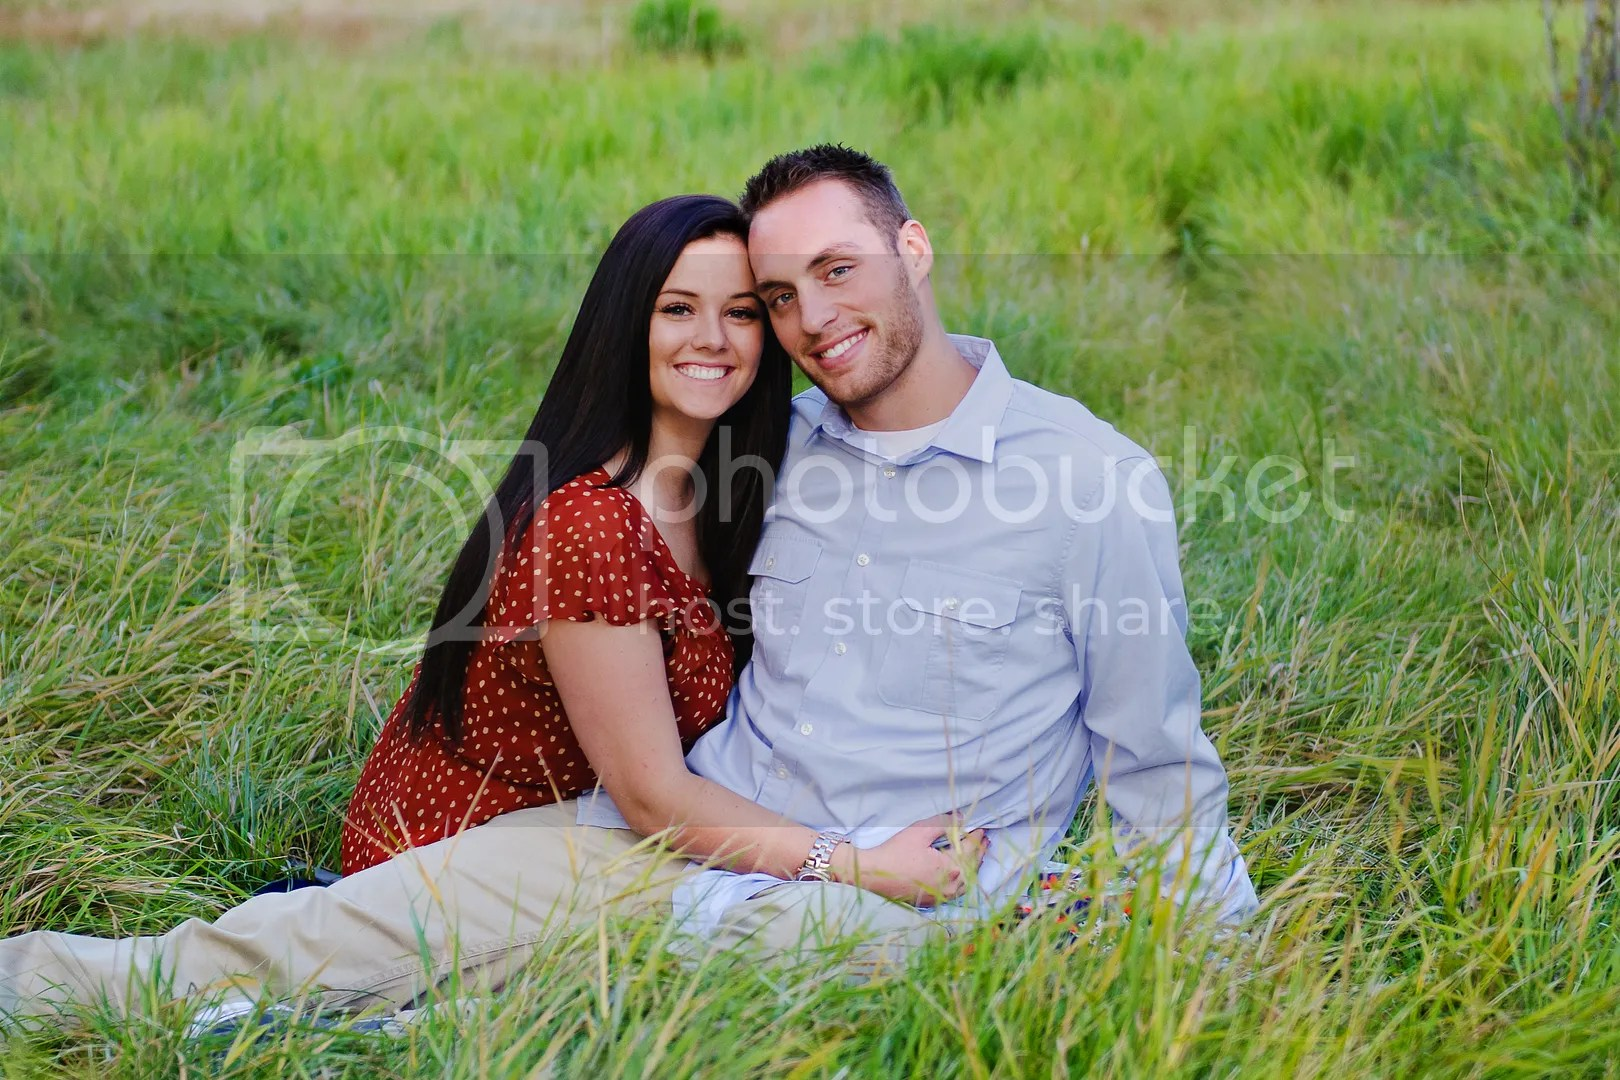 photo PandLEngagements2_KaraSimmons_6_zpsc6c1ab21.jpg